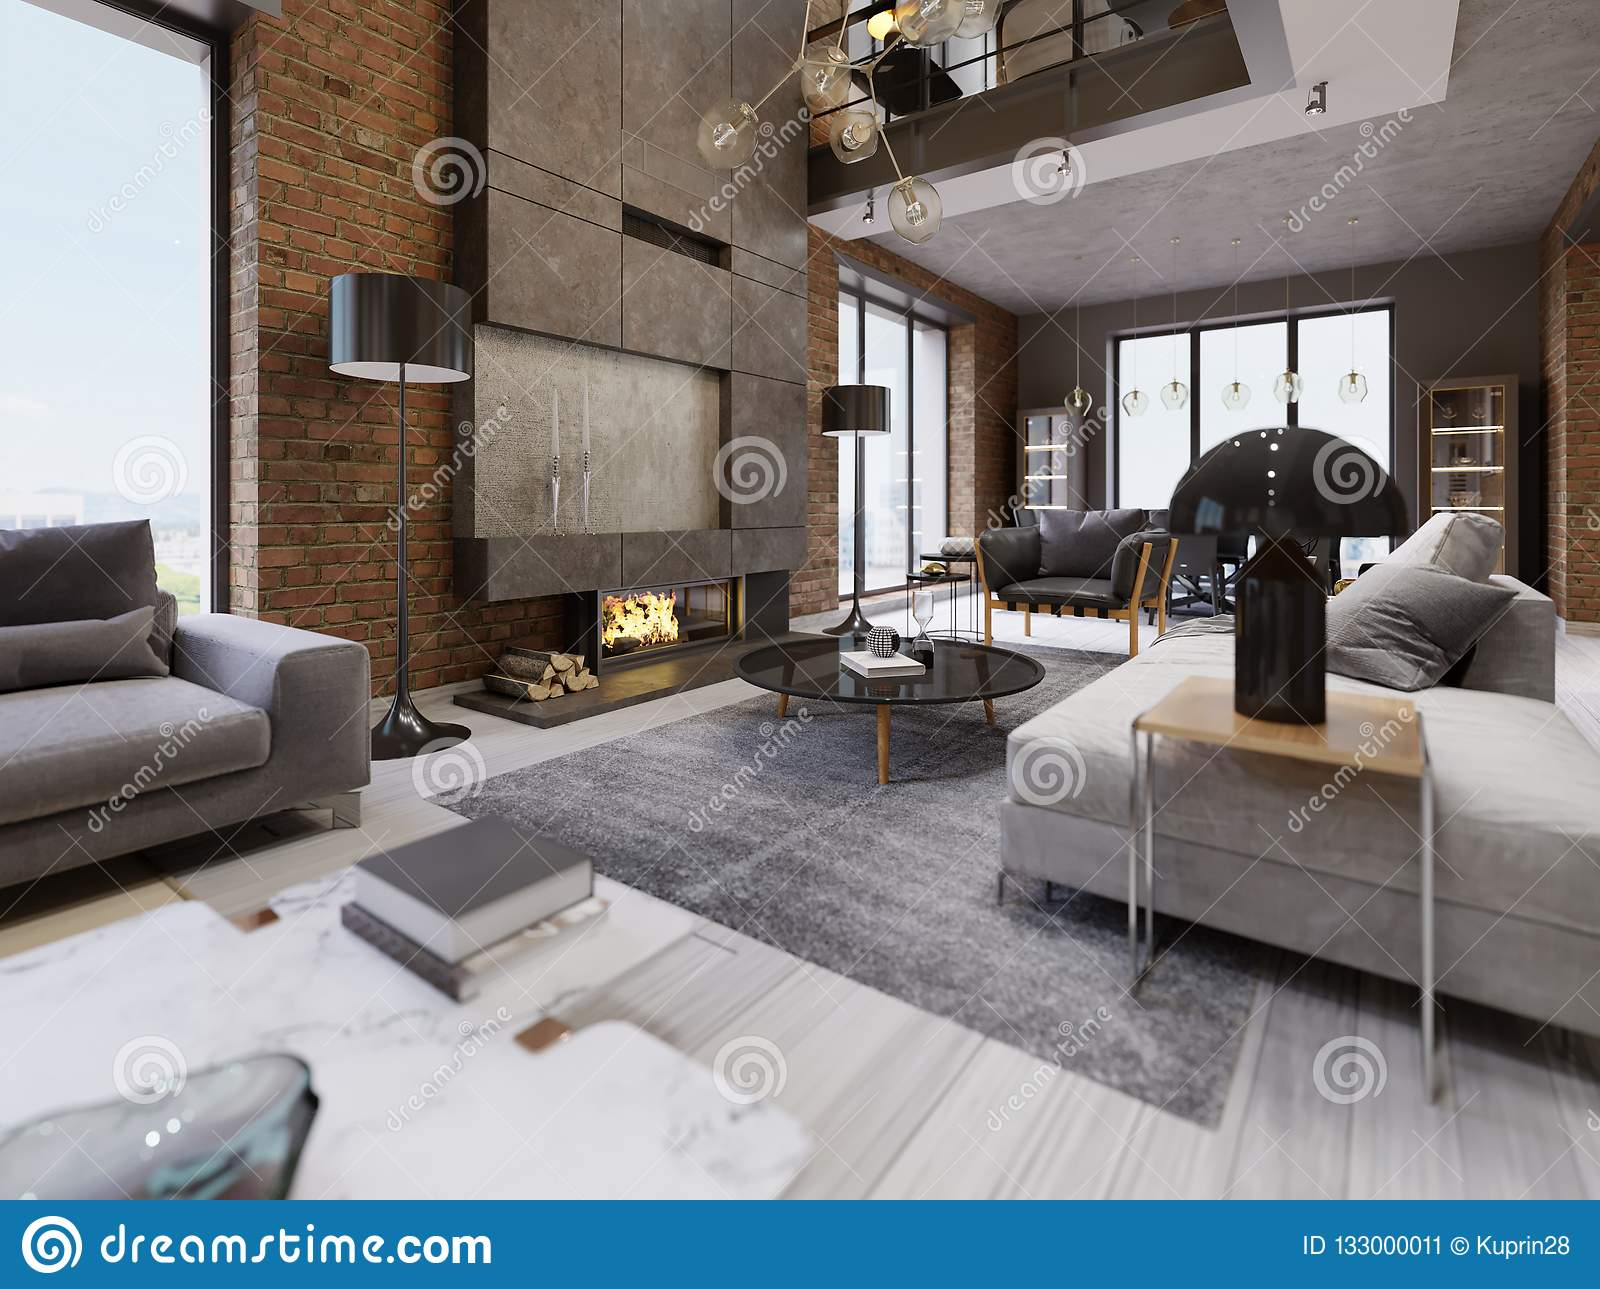 Red brick furniture Kelly Hoppen Modern Loft Living Room With High Ceiling Sofa Red Brick Wall White Parquet Upholstery Sofa And Furniture Design Accessories Dining Table With Chairs Yelp London Modern Loft Living Room With High Ceiling Sofa Red Brick Wall